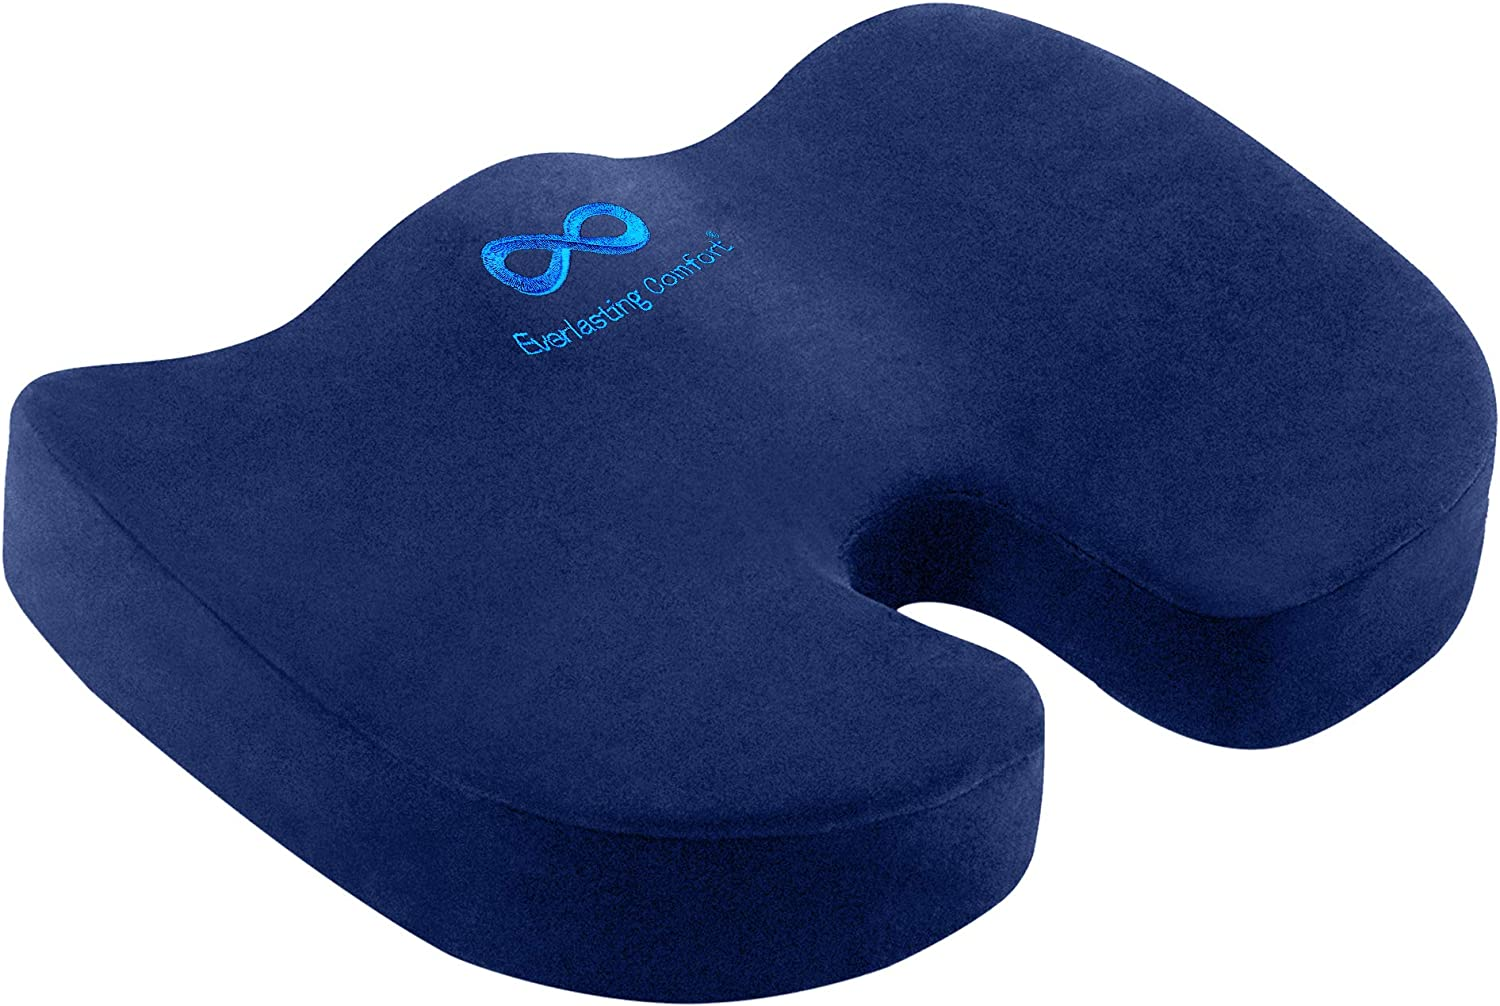 Everlasting Comfort Seat Cushion for Office Chair - Tailbone Pain Relief Cushion - Coccyx Cushion - Sciatica Pillow for Sitting (Navy Blue)